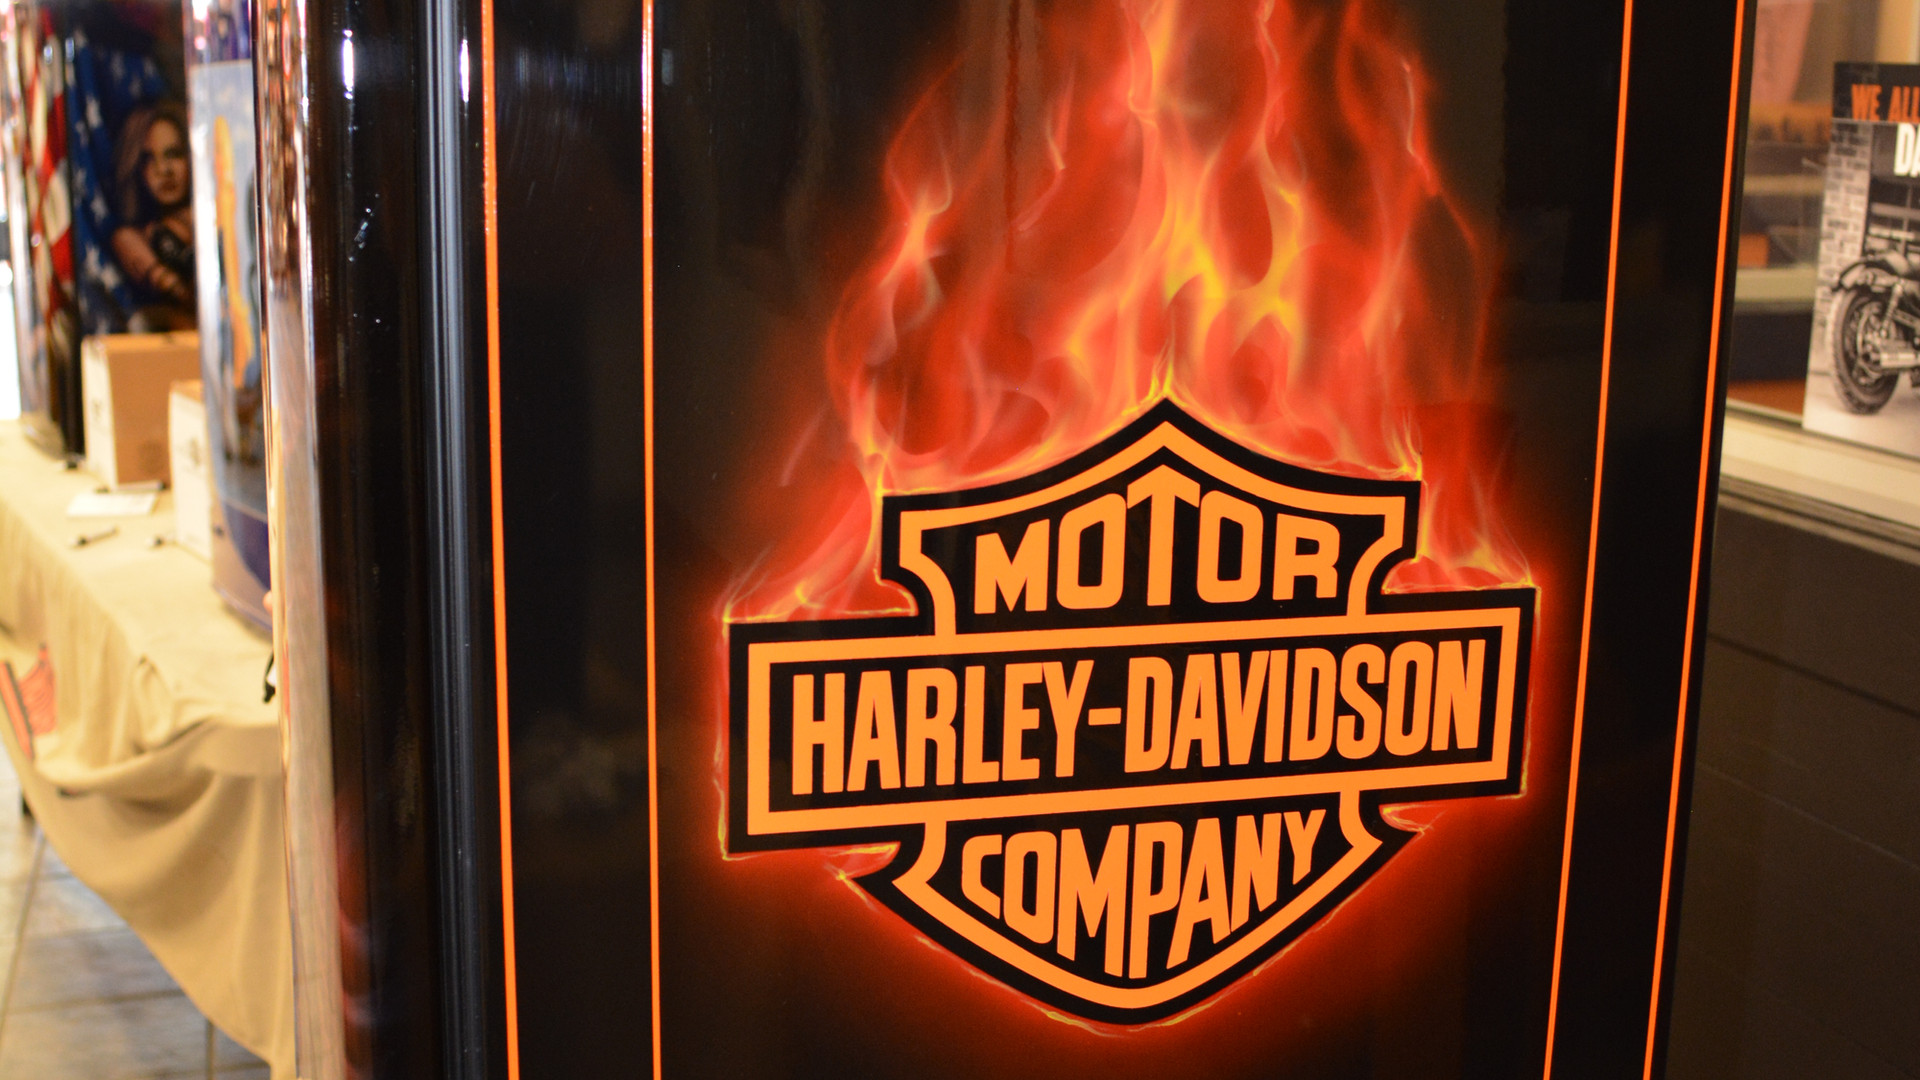 Harley Davidson on mini fridge.JPG